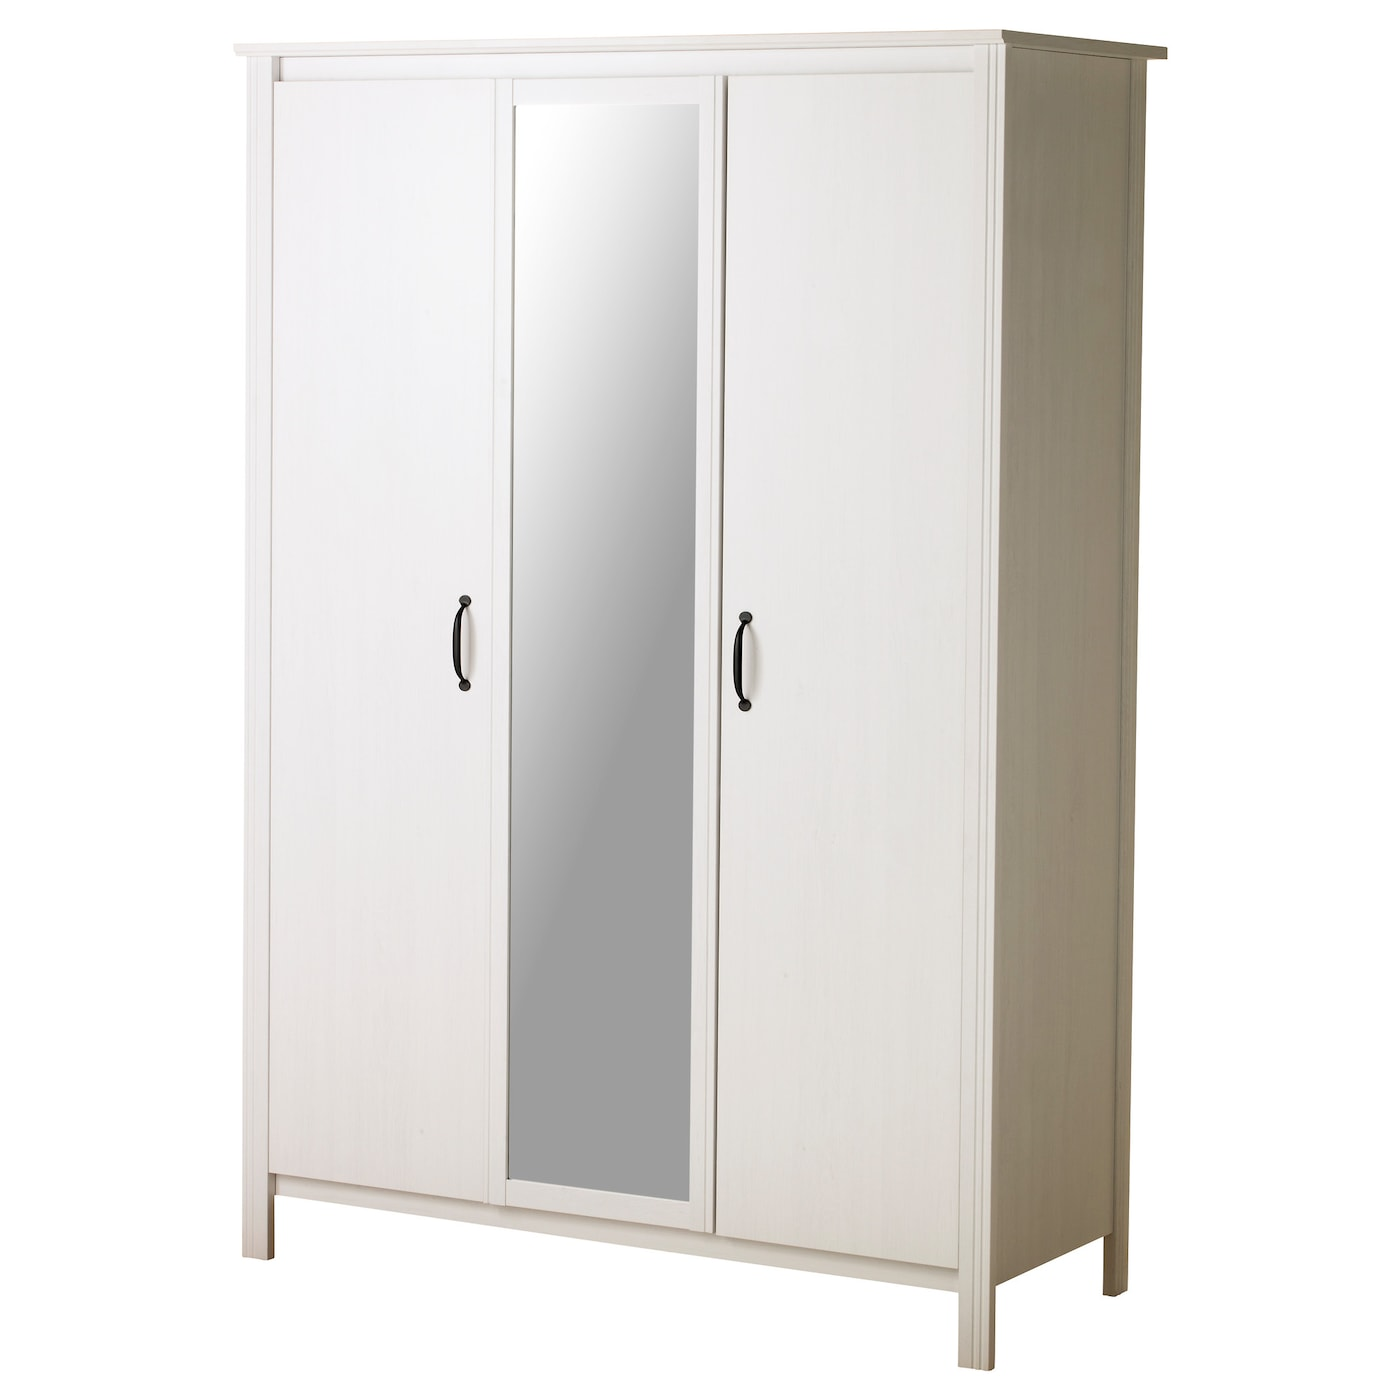 brusali wardrobe with 3 doors white 131x190 cm ikea. Black Bedroom Furniture Sets. Home Design Ideas